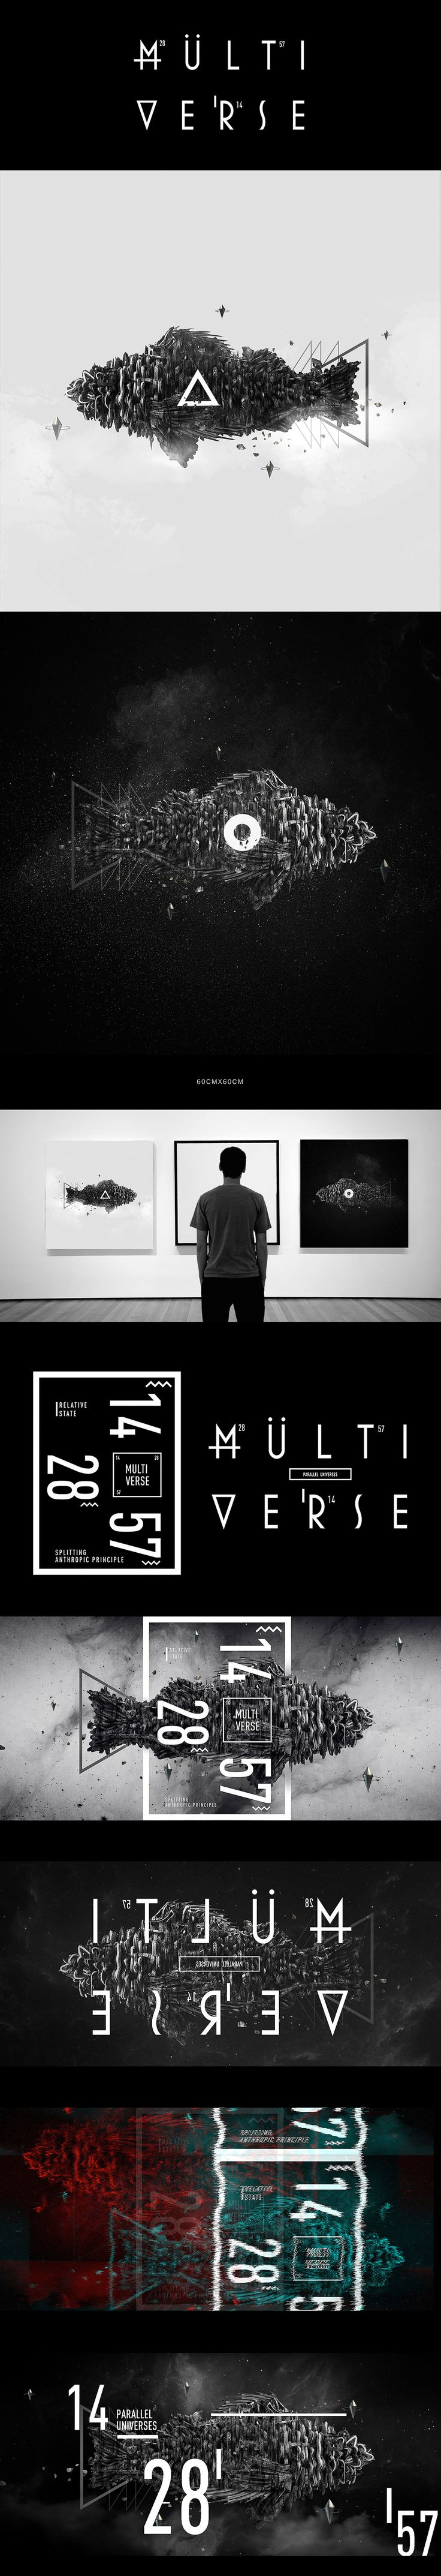 Poster design layout principles - Find This Pin And More On Design